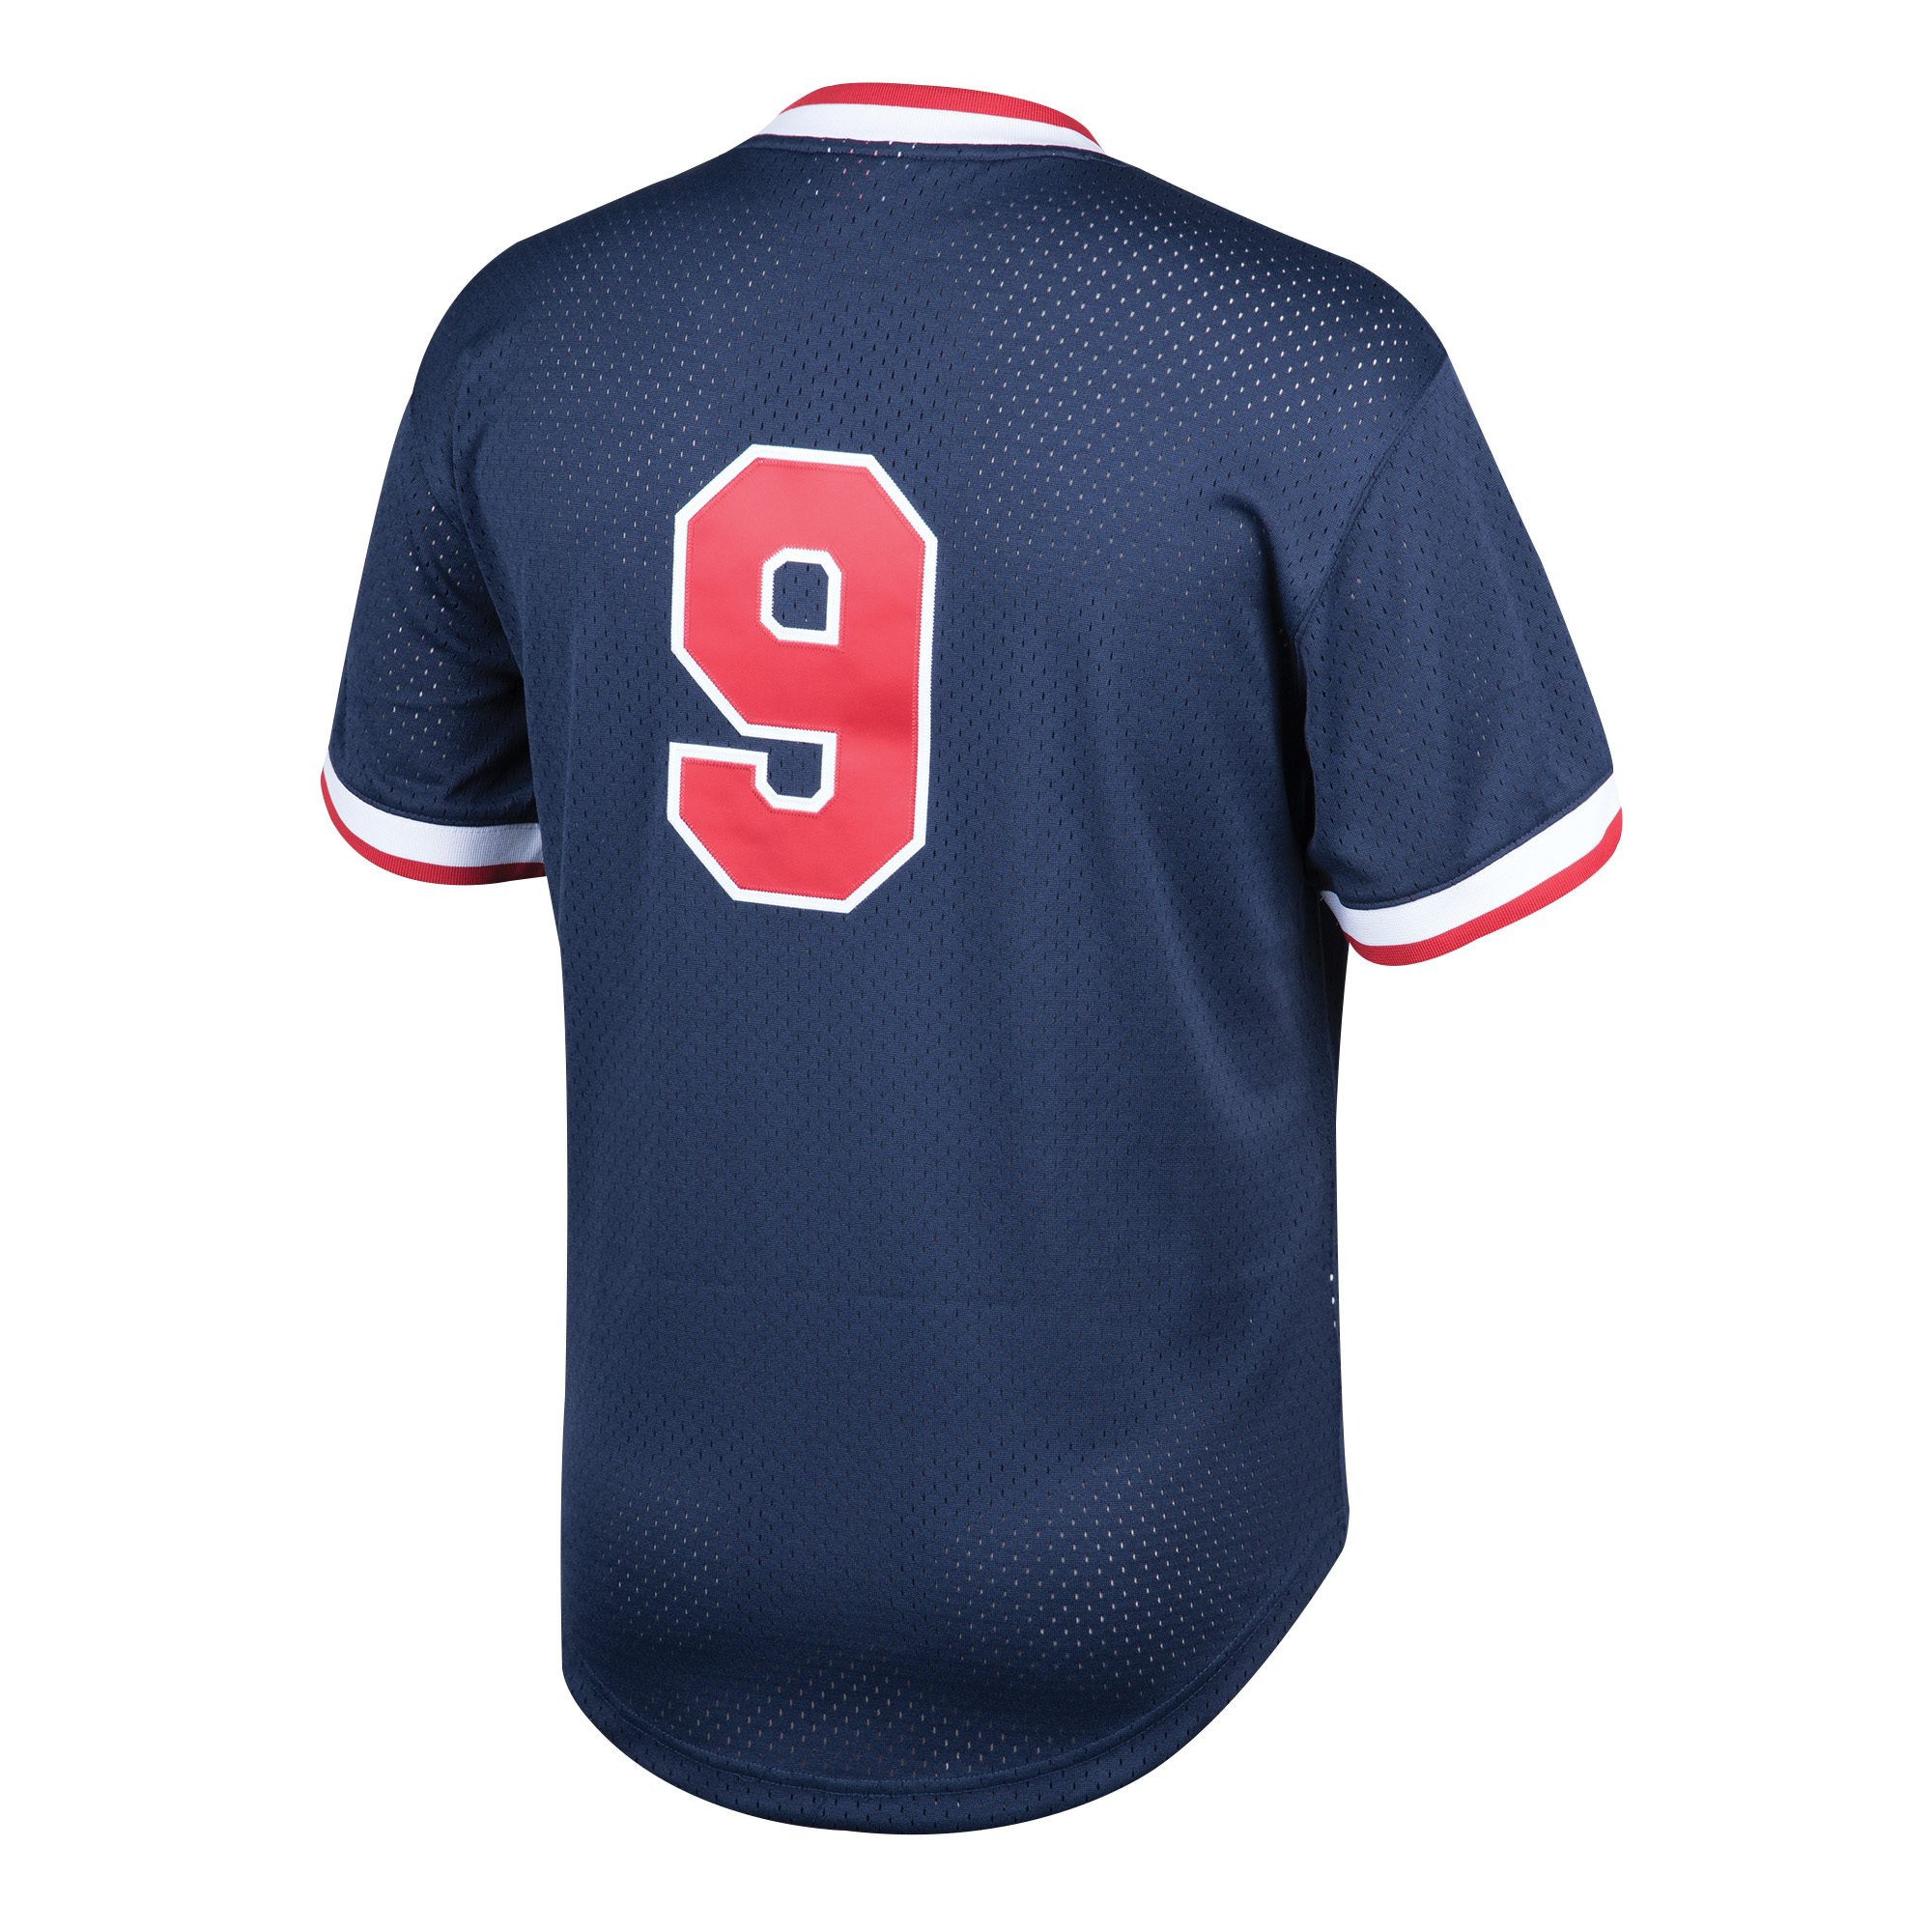 finest selection 5a14a 82051 Ted Williams Boston Red Sox Mitchell & Ness Youth Cooperstown Collection  Mesh Batting Practice Jersey - Navy